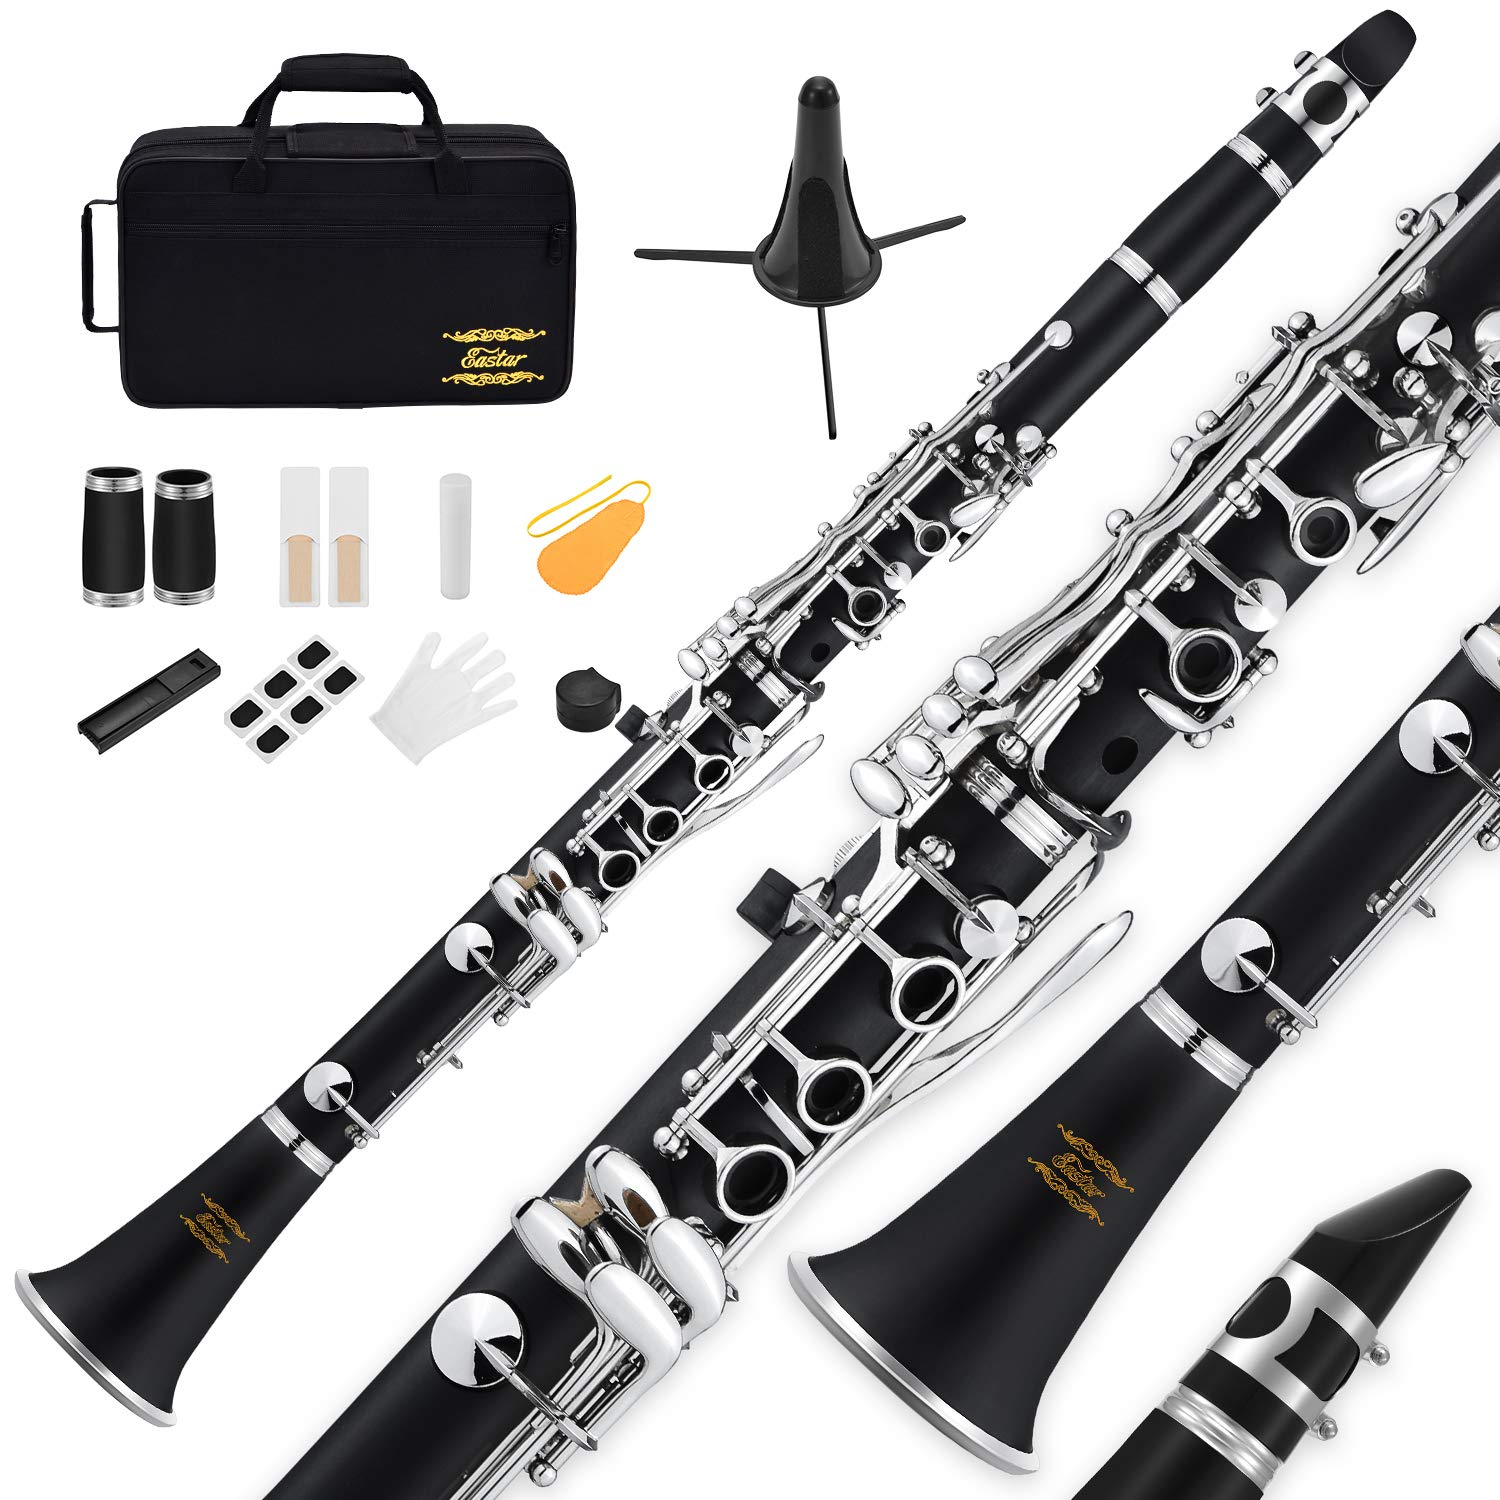 Eastar B Flat Clarinet Black Ebonite Clarinet With Mouthpiece,Case,2 Connector,8 Occlusion Rim,Clarinet Stand,3 Reeds and More Keys by Eastar